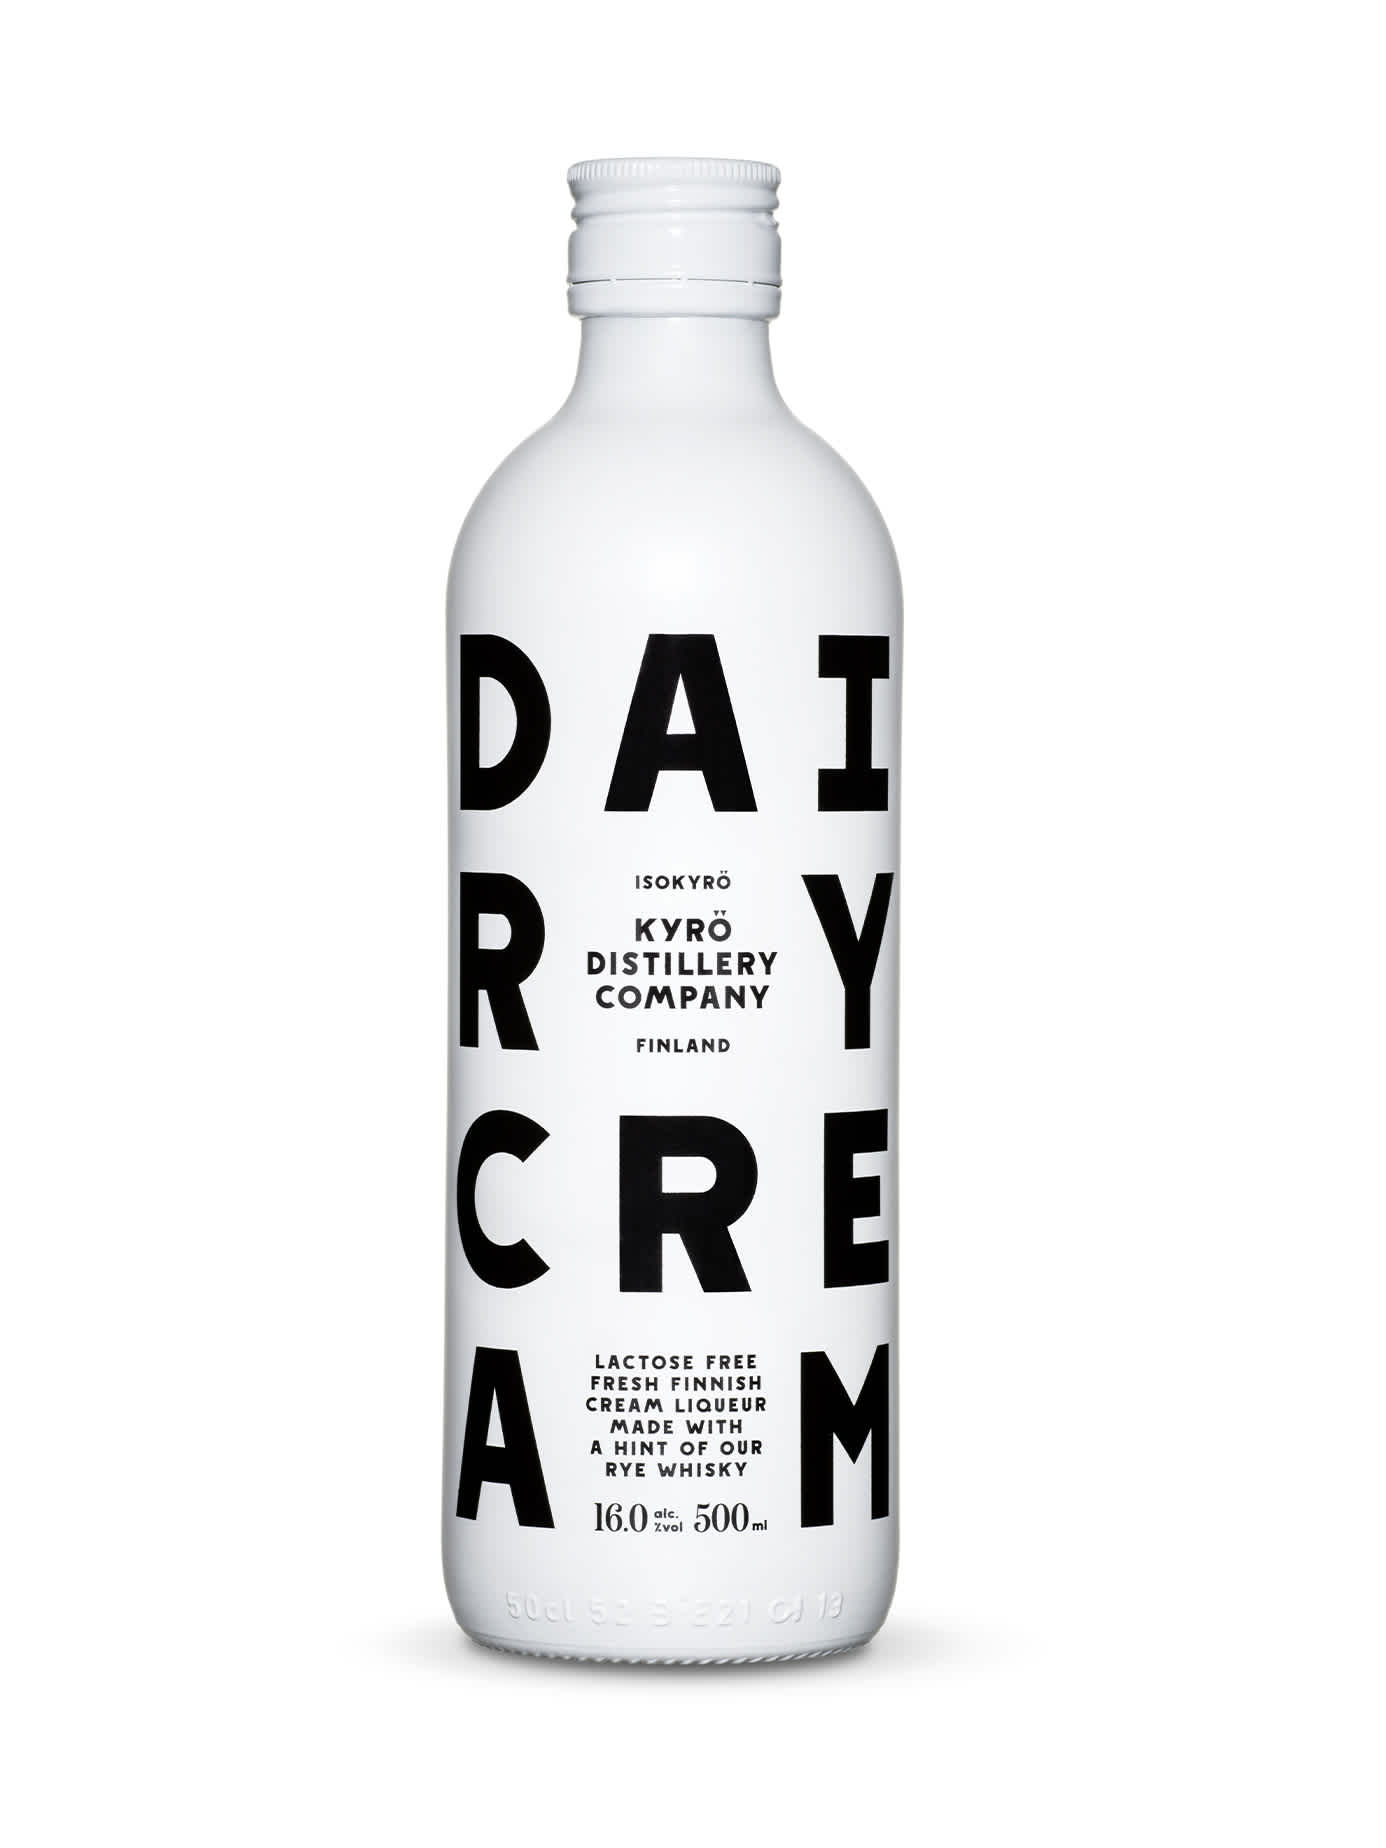 Product photo: 0,5 l bottle of Dairy Cream liquor made with award-winning Finnish rye whisky from Kyrö Distillery Company.